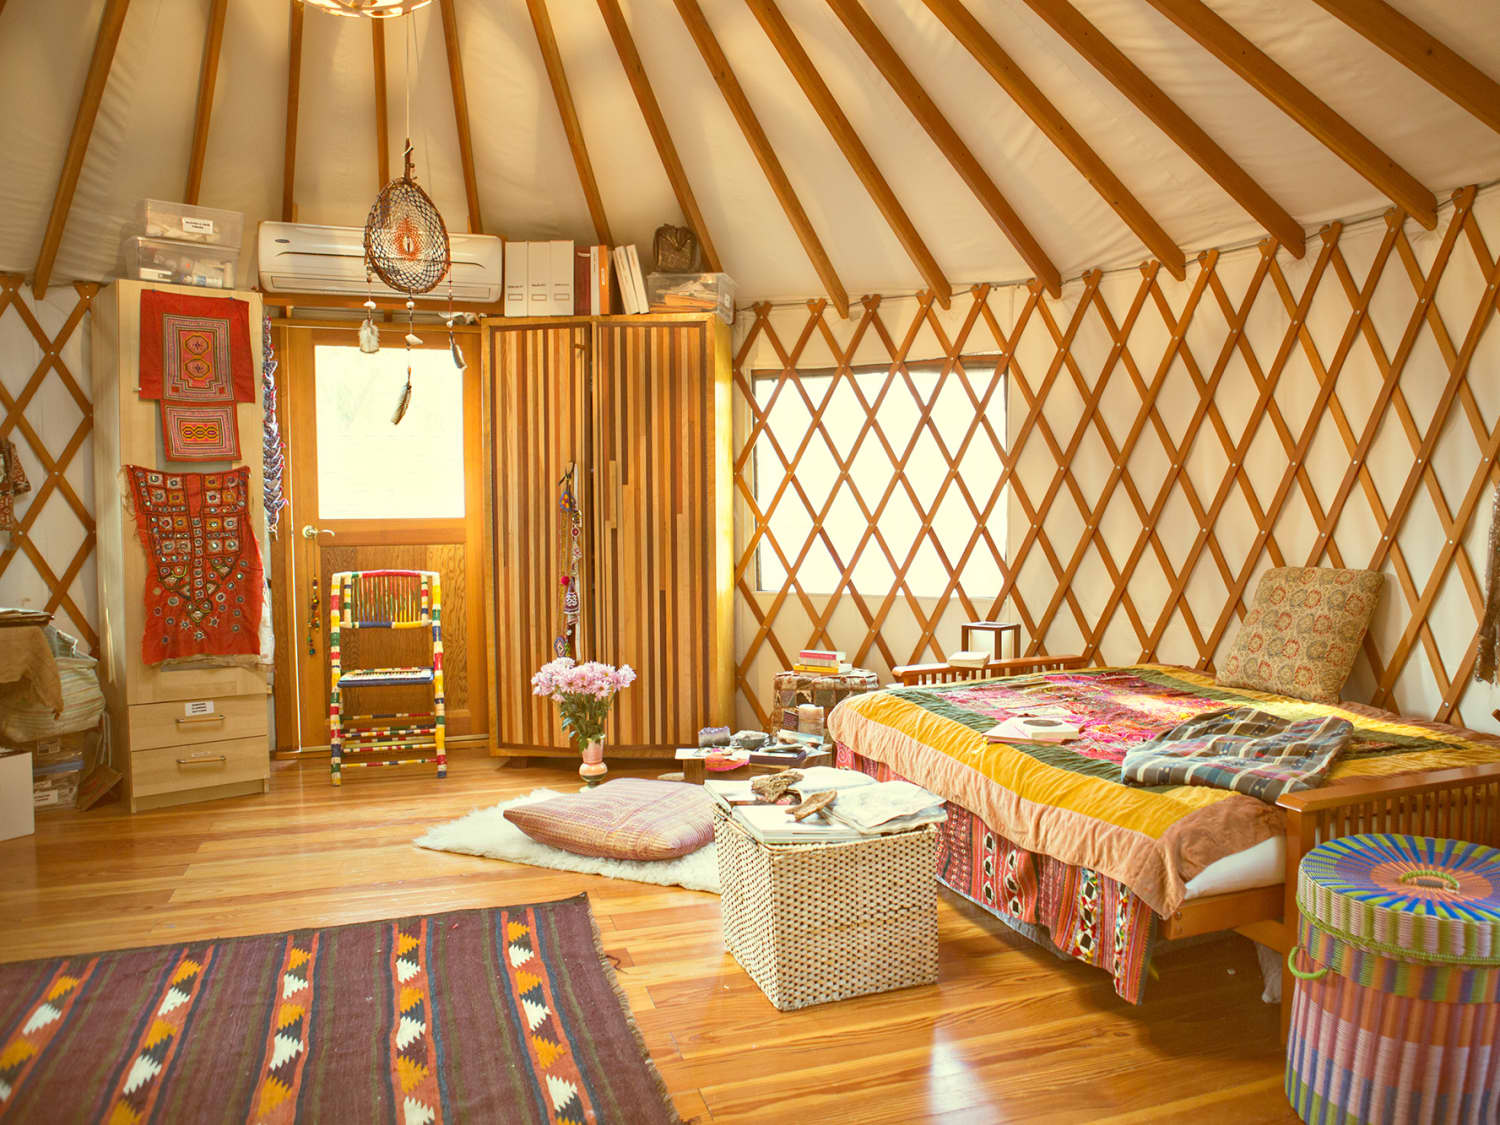 The 7 Best Sources To Buy Yurt Kits Apartment Therapy The tradition of the yurt is probably quite ancient. the 7 best sources to buy yurt kits